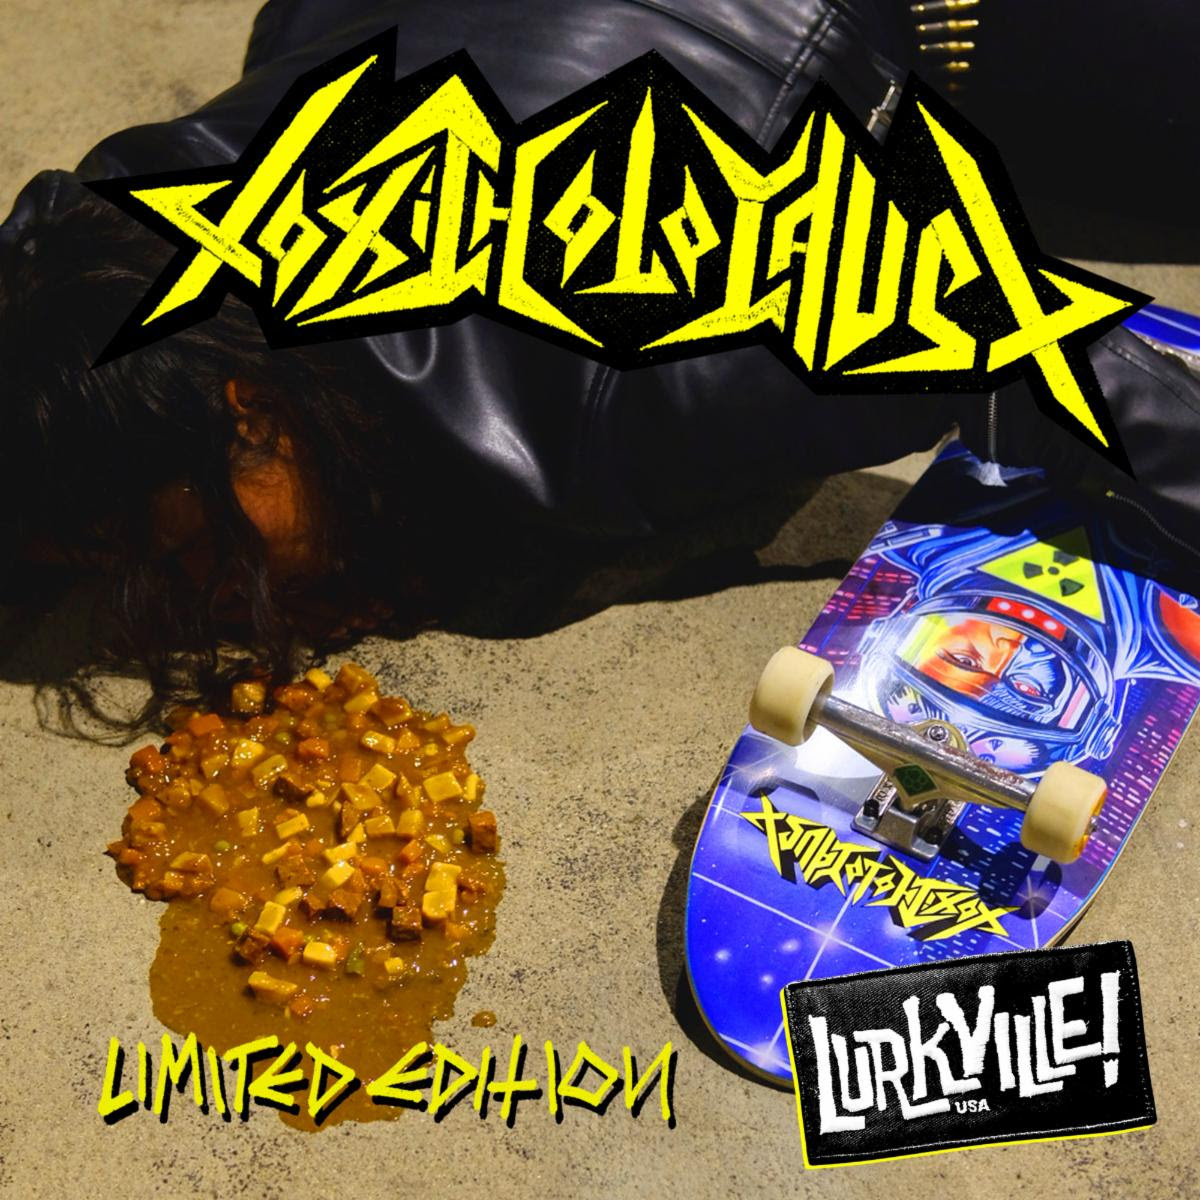 Maehem News: TOXIC HOLOCAUST Teams Up With Lurkville Skateboards For Limited Edition Skate Deck